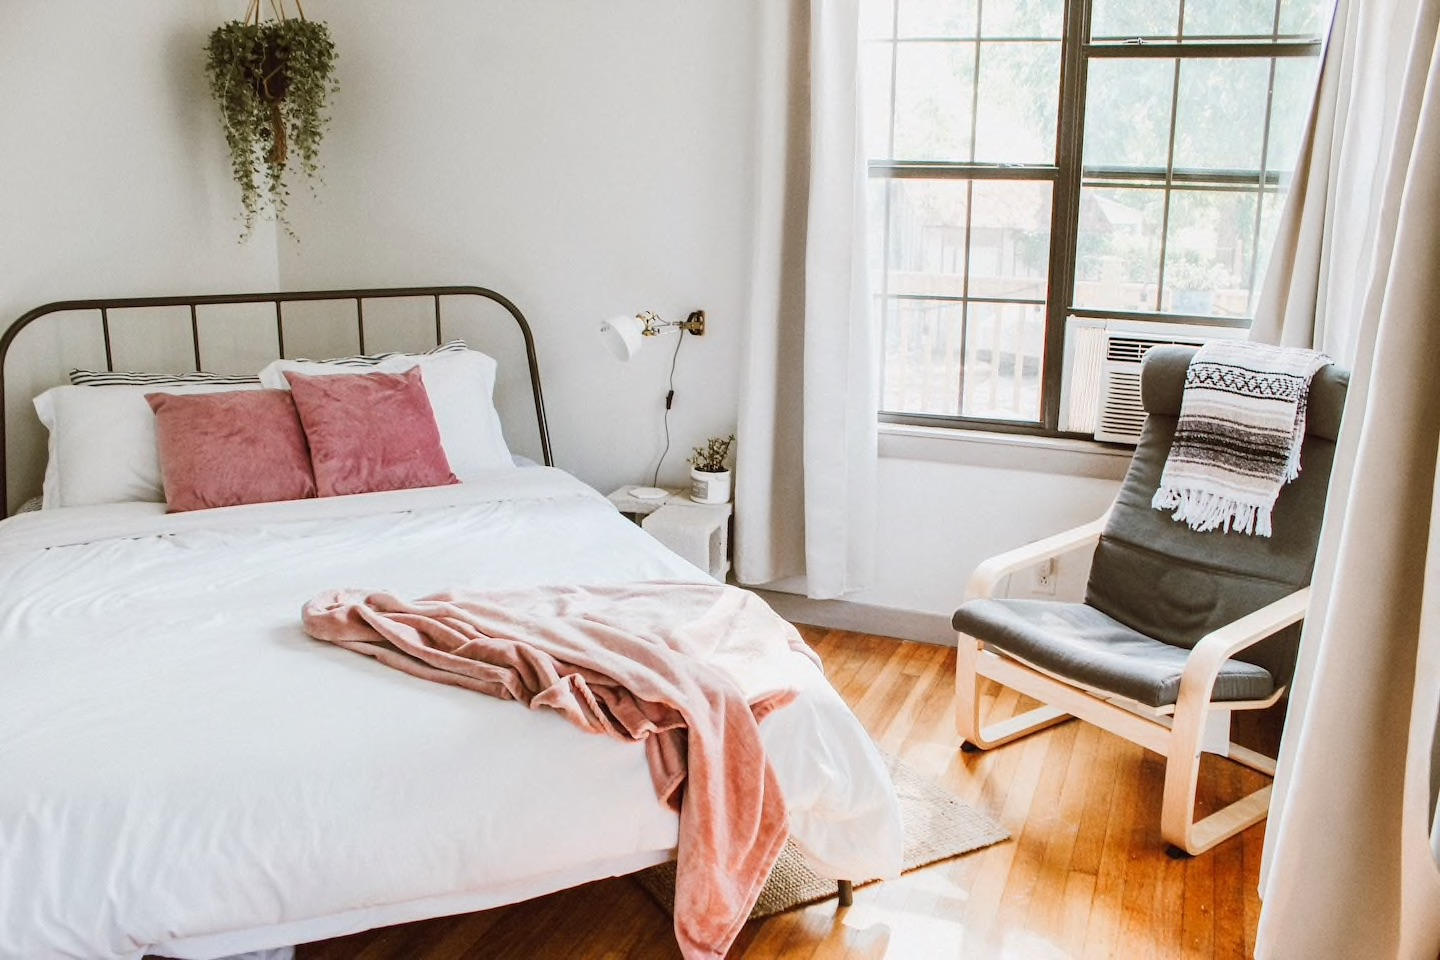 The Minimalist Escape is one of your options for San Antonio Airbnbs